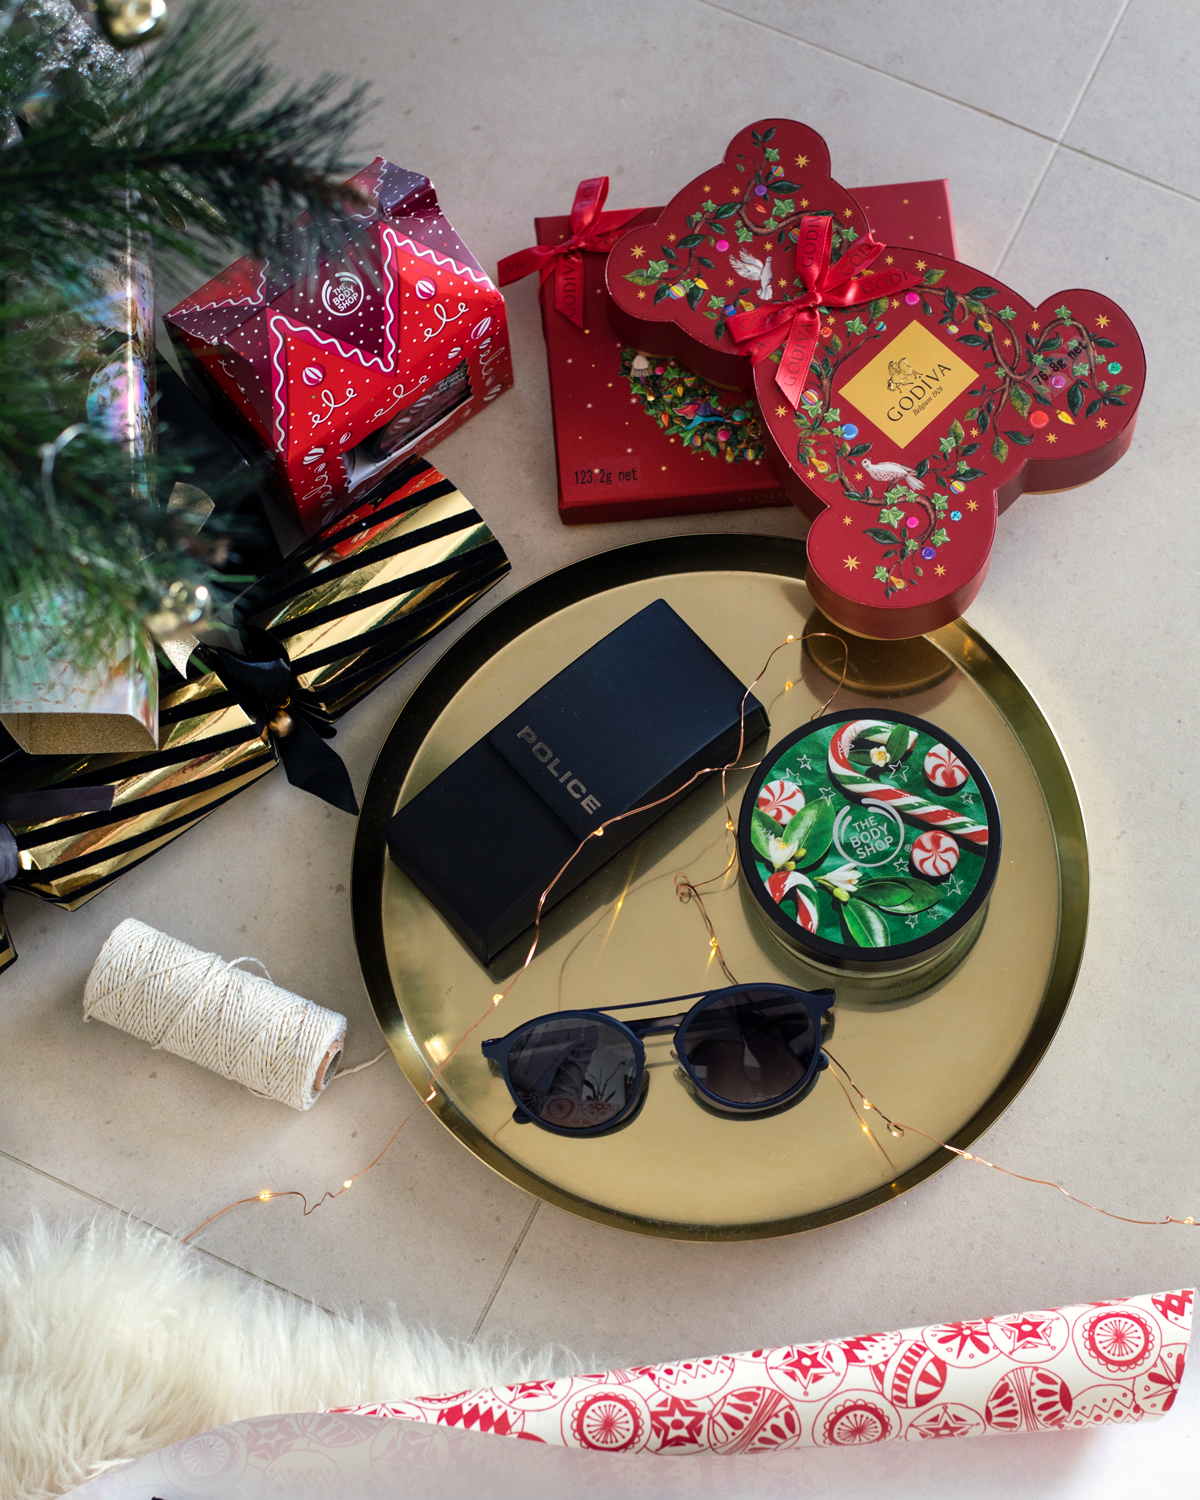 2018 Christmas gift guide Inspiring Wit blog featuring men's gifts Police eyewear sunglasses with The Body Shop Candy Cane body lotion and Godiva Chocolates